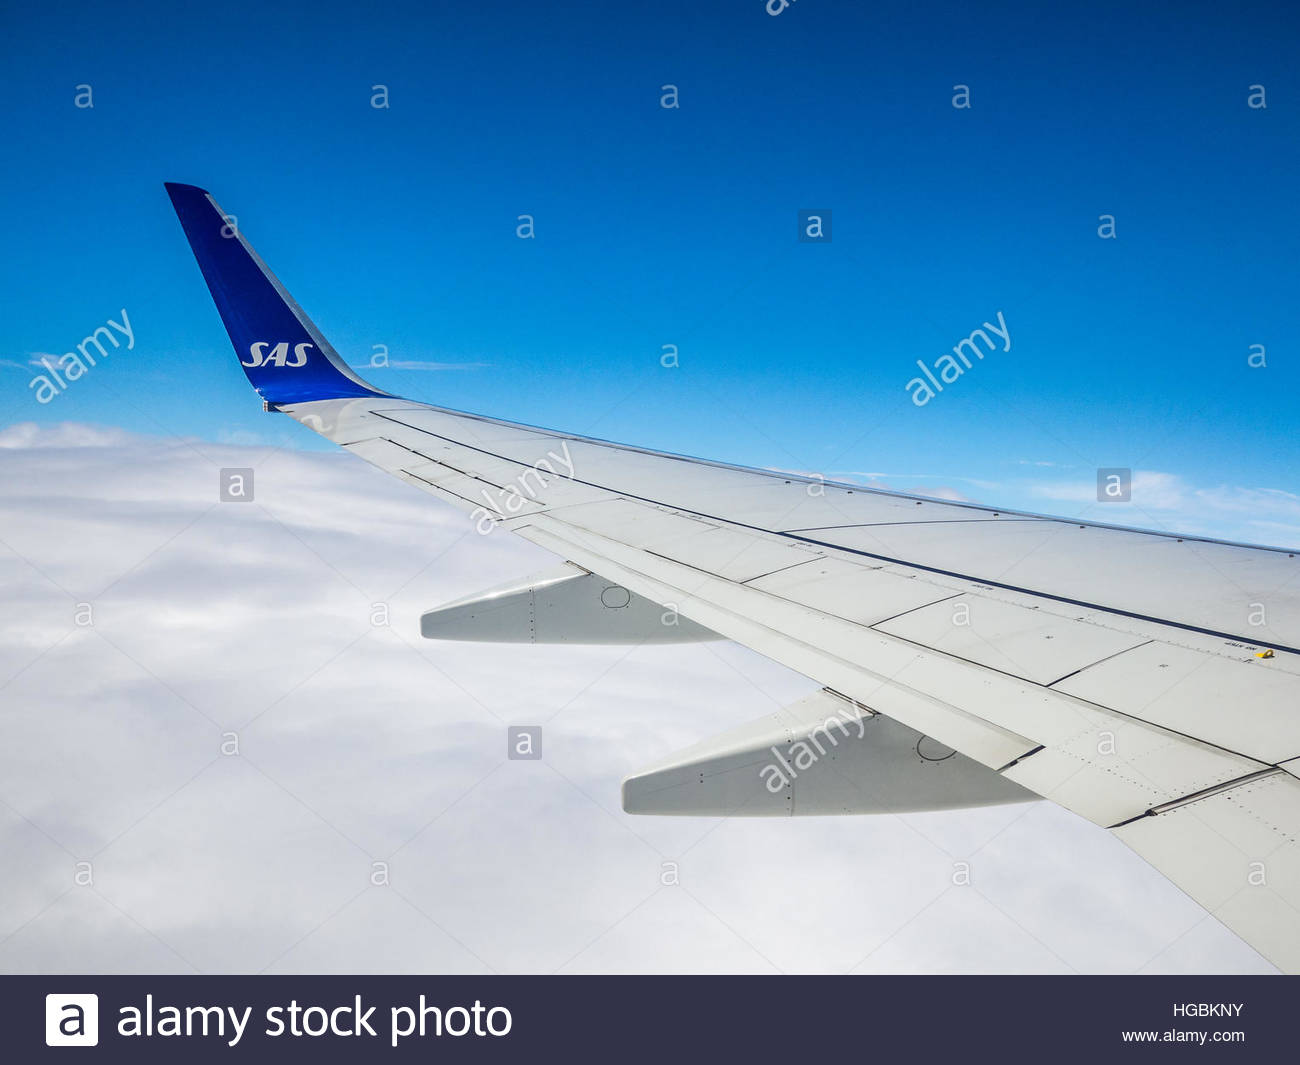 SAS winglet on 737 with blue sky above clouds - Stock Image